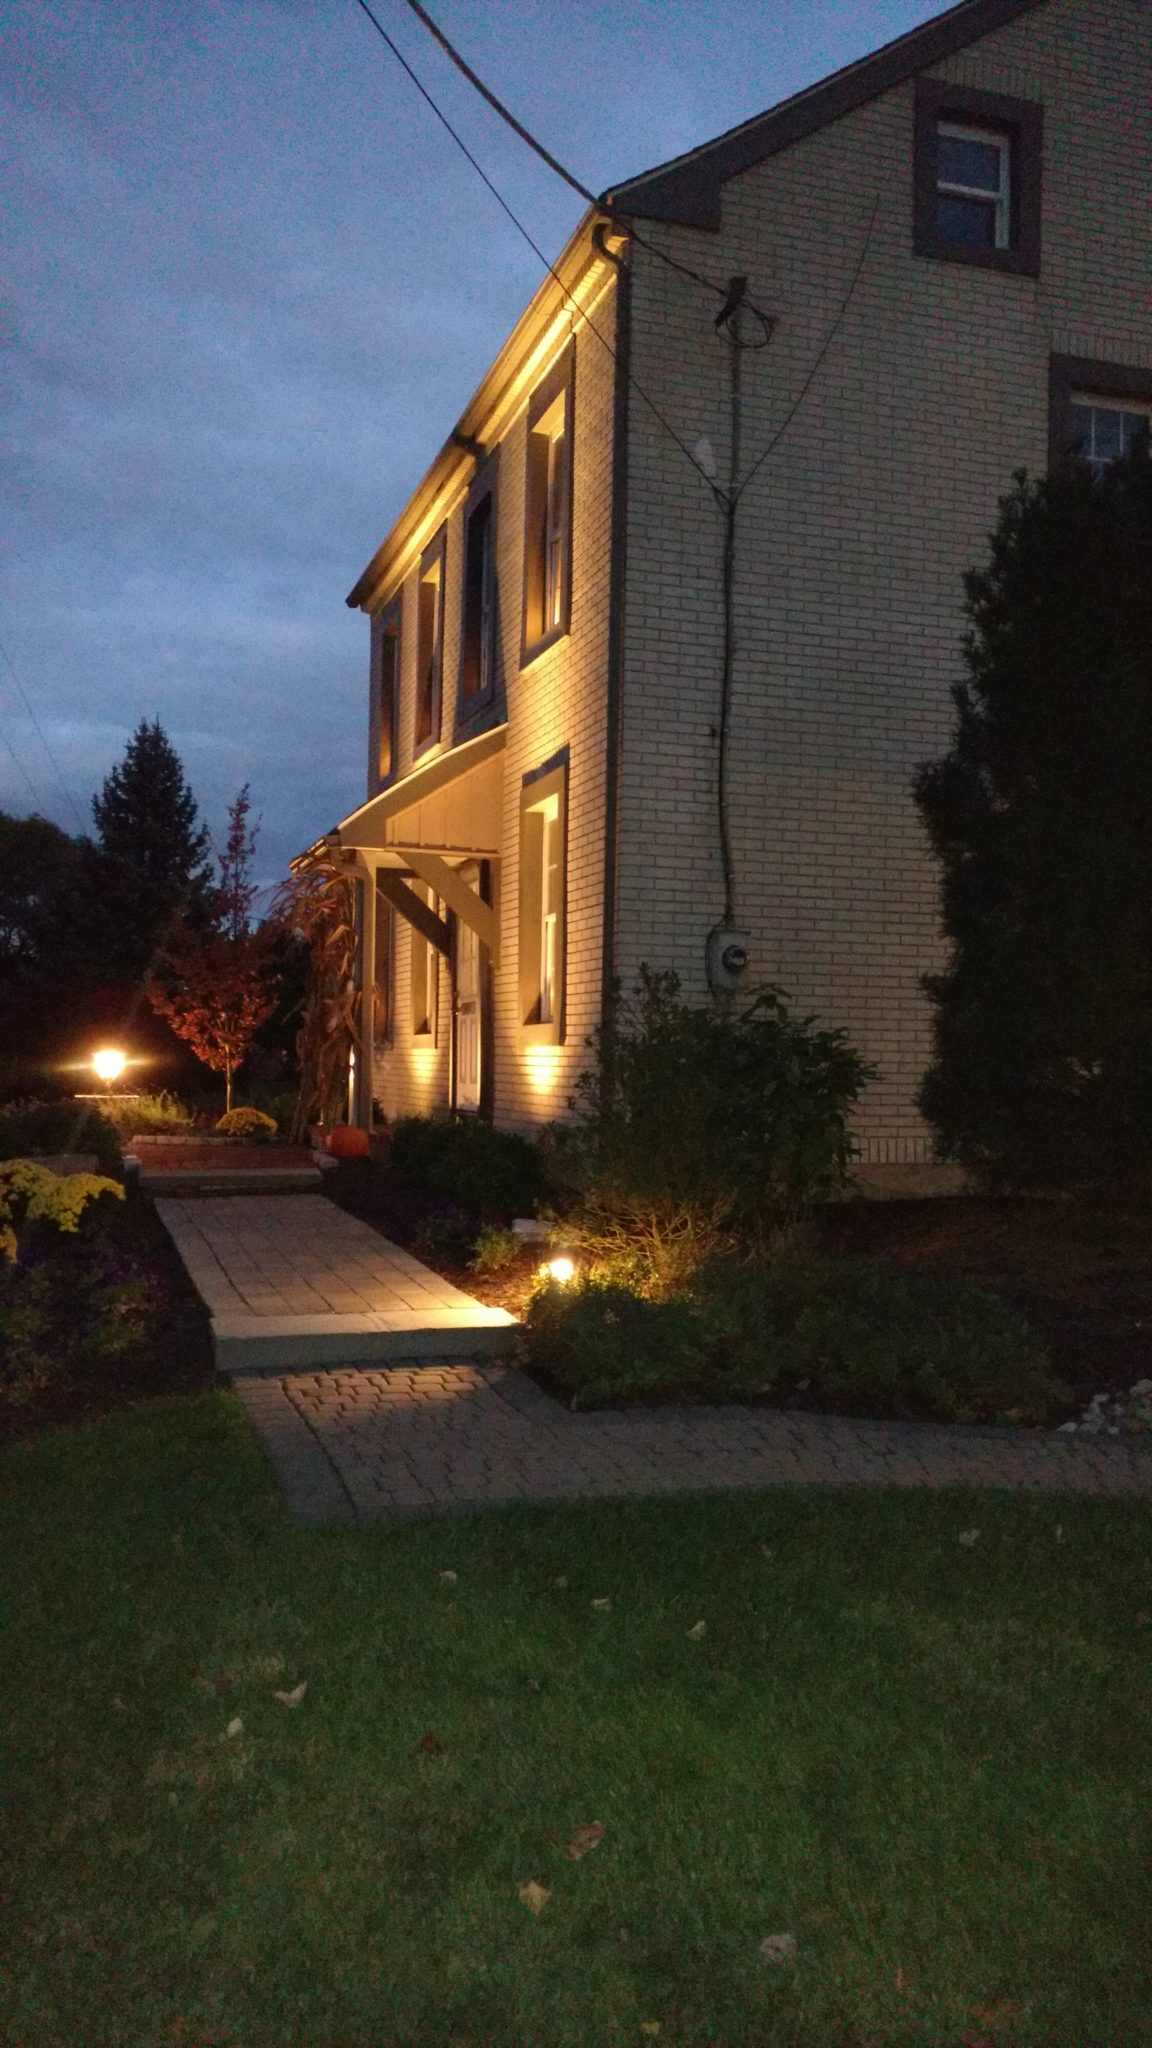 outdoor lighting systems plantique landscaping